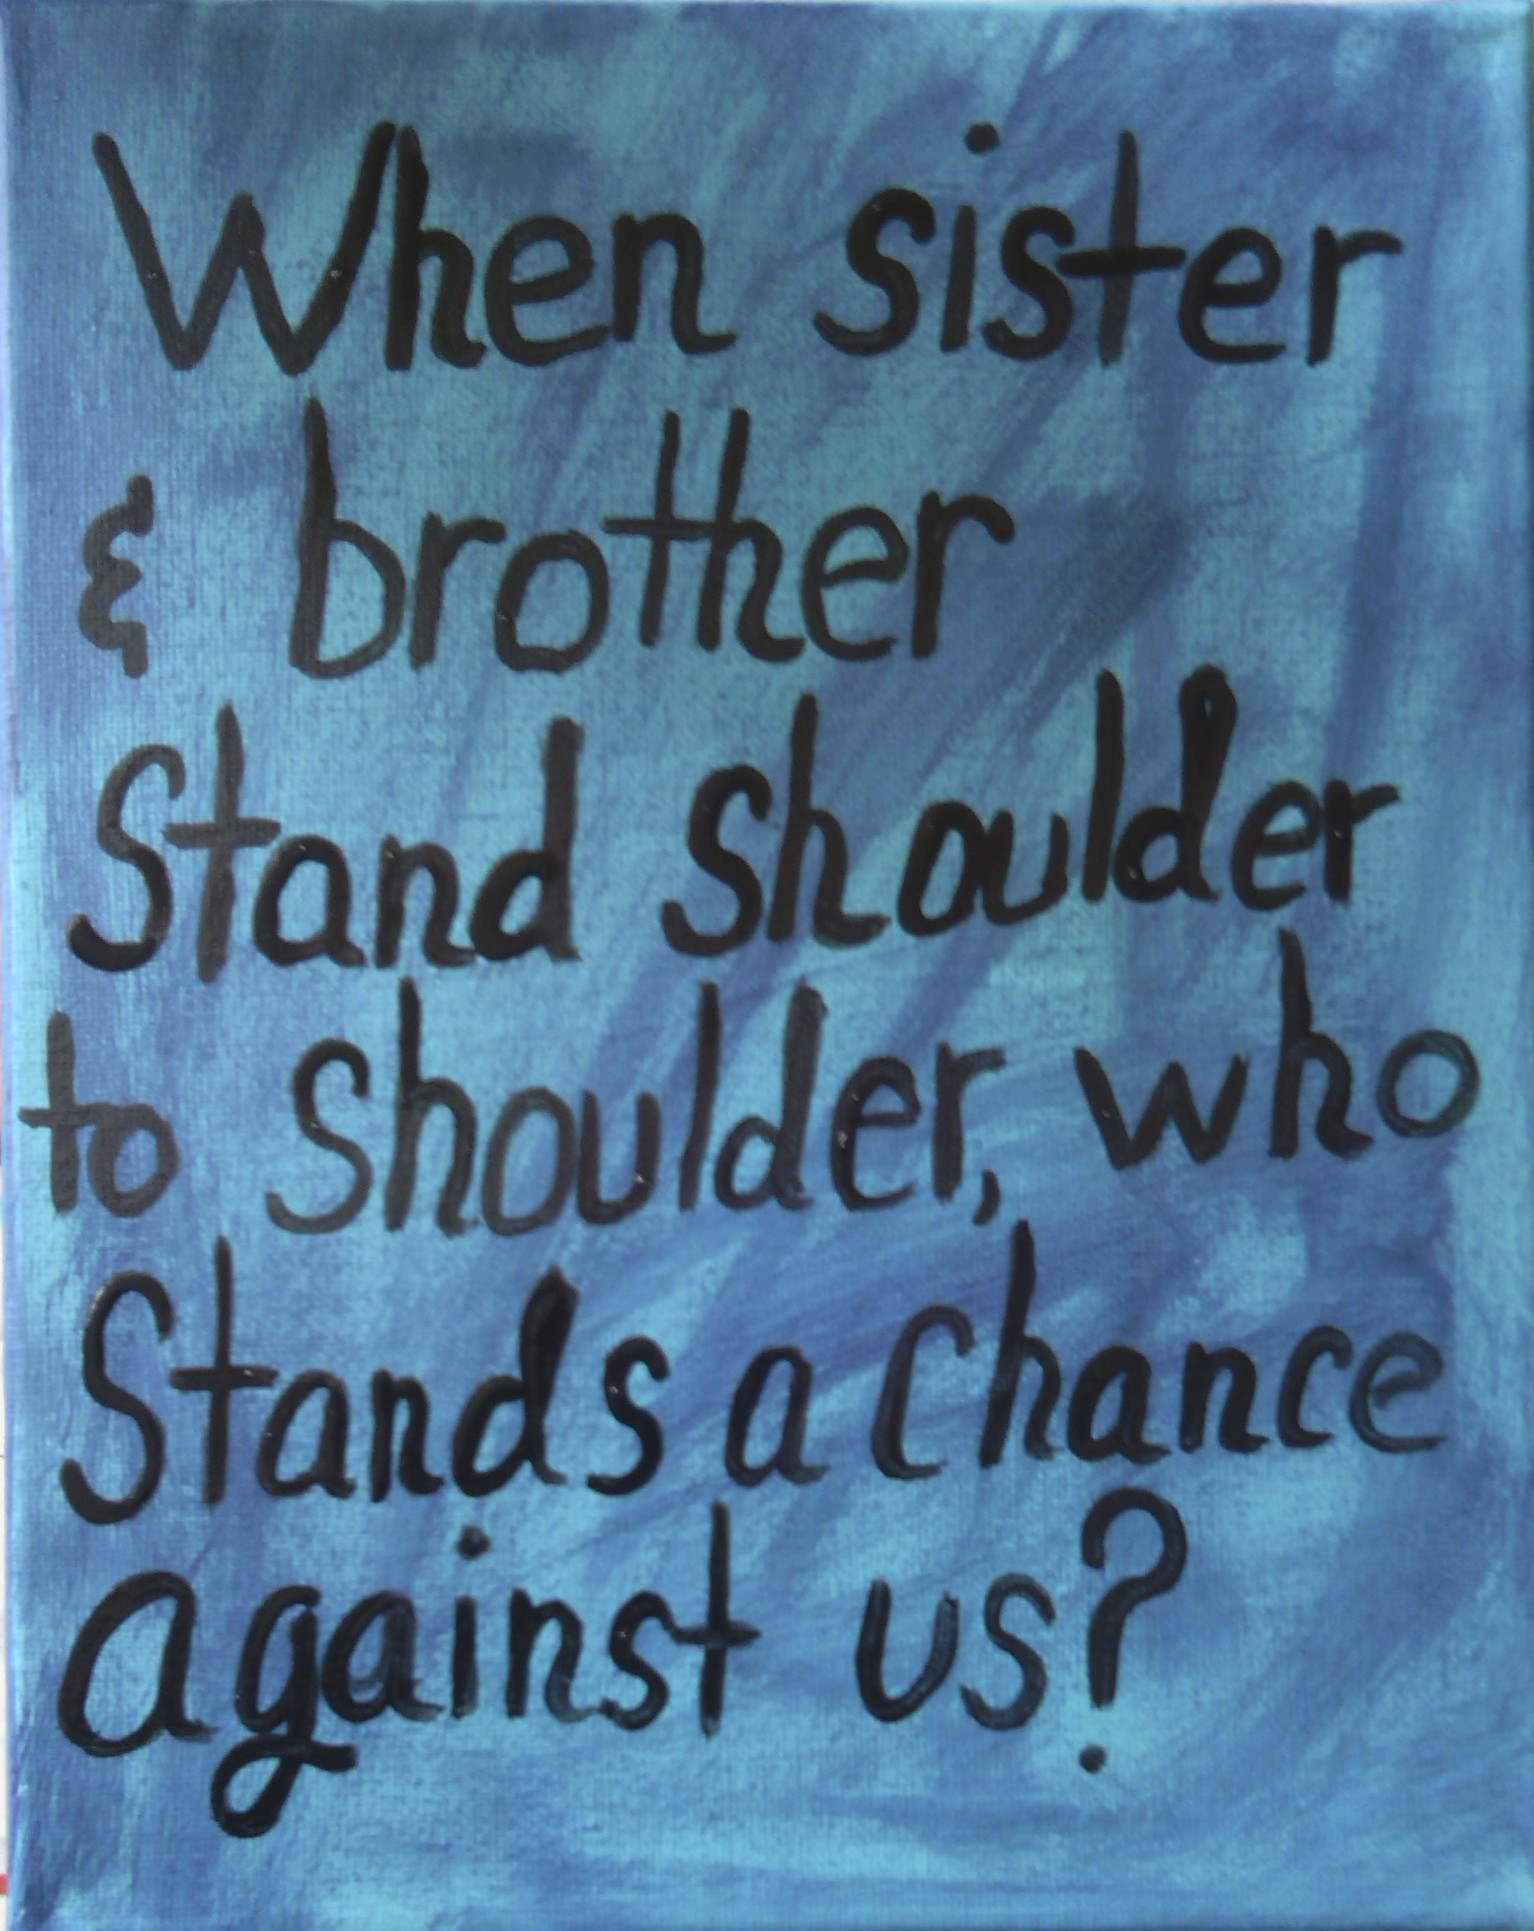 Sibling quote, look good as a split tattoo for brother and sister